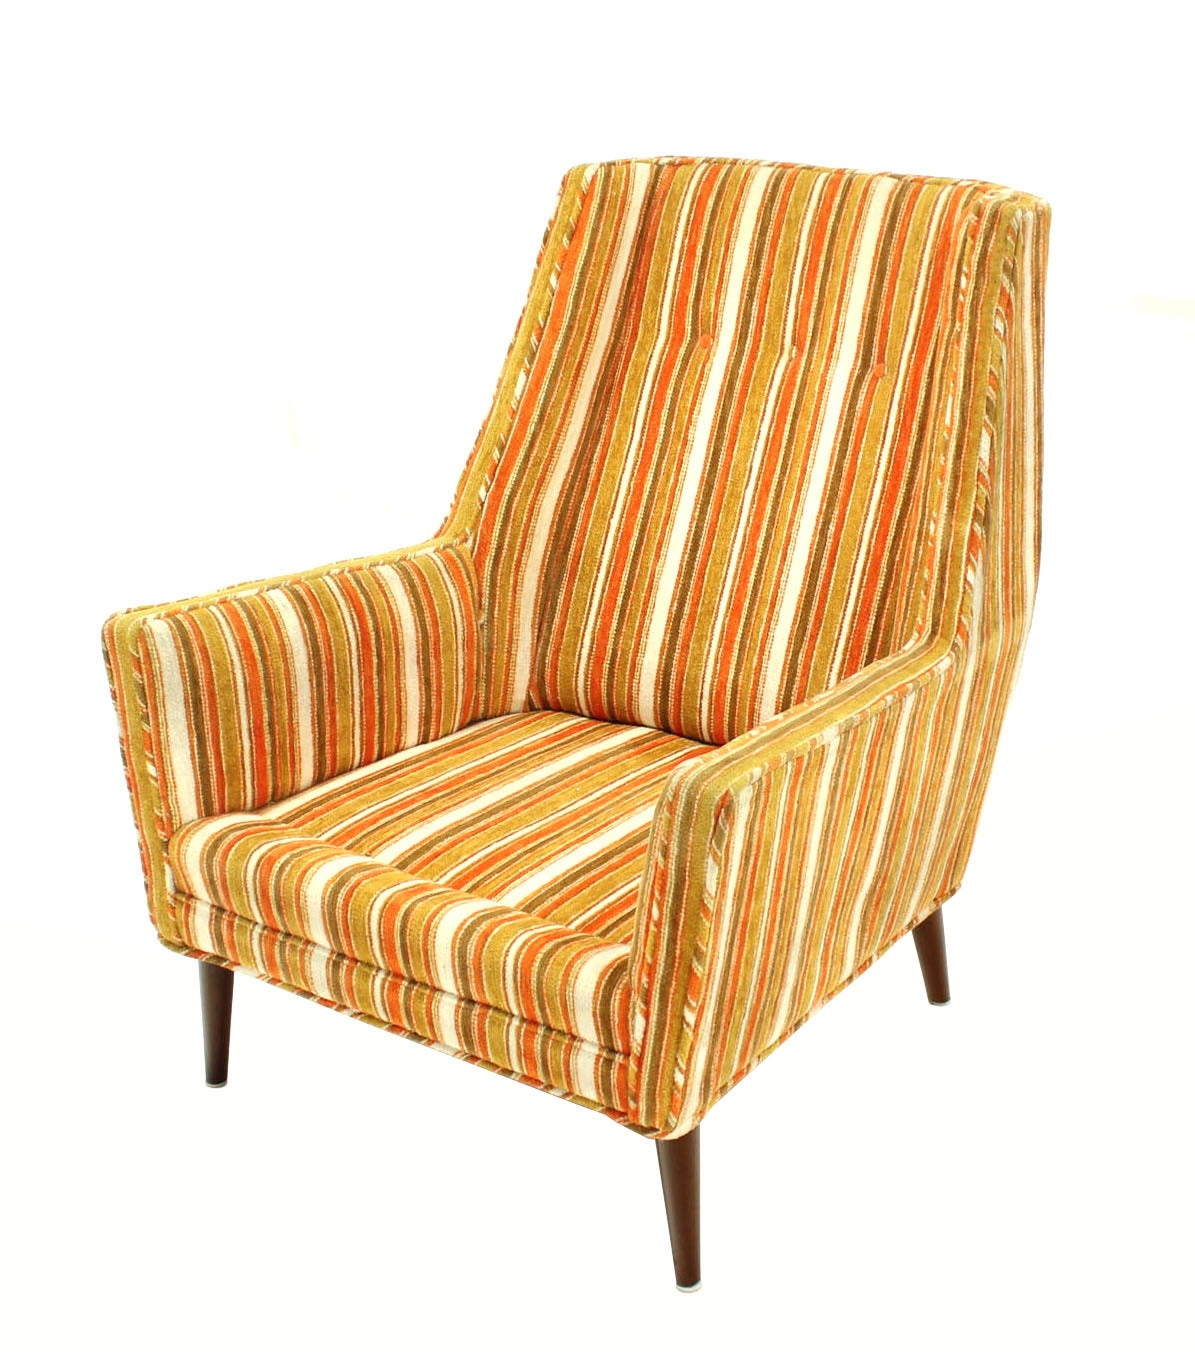 Mid century modern lounge chair for sale at 1stdibs for Mid century modern club chairs